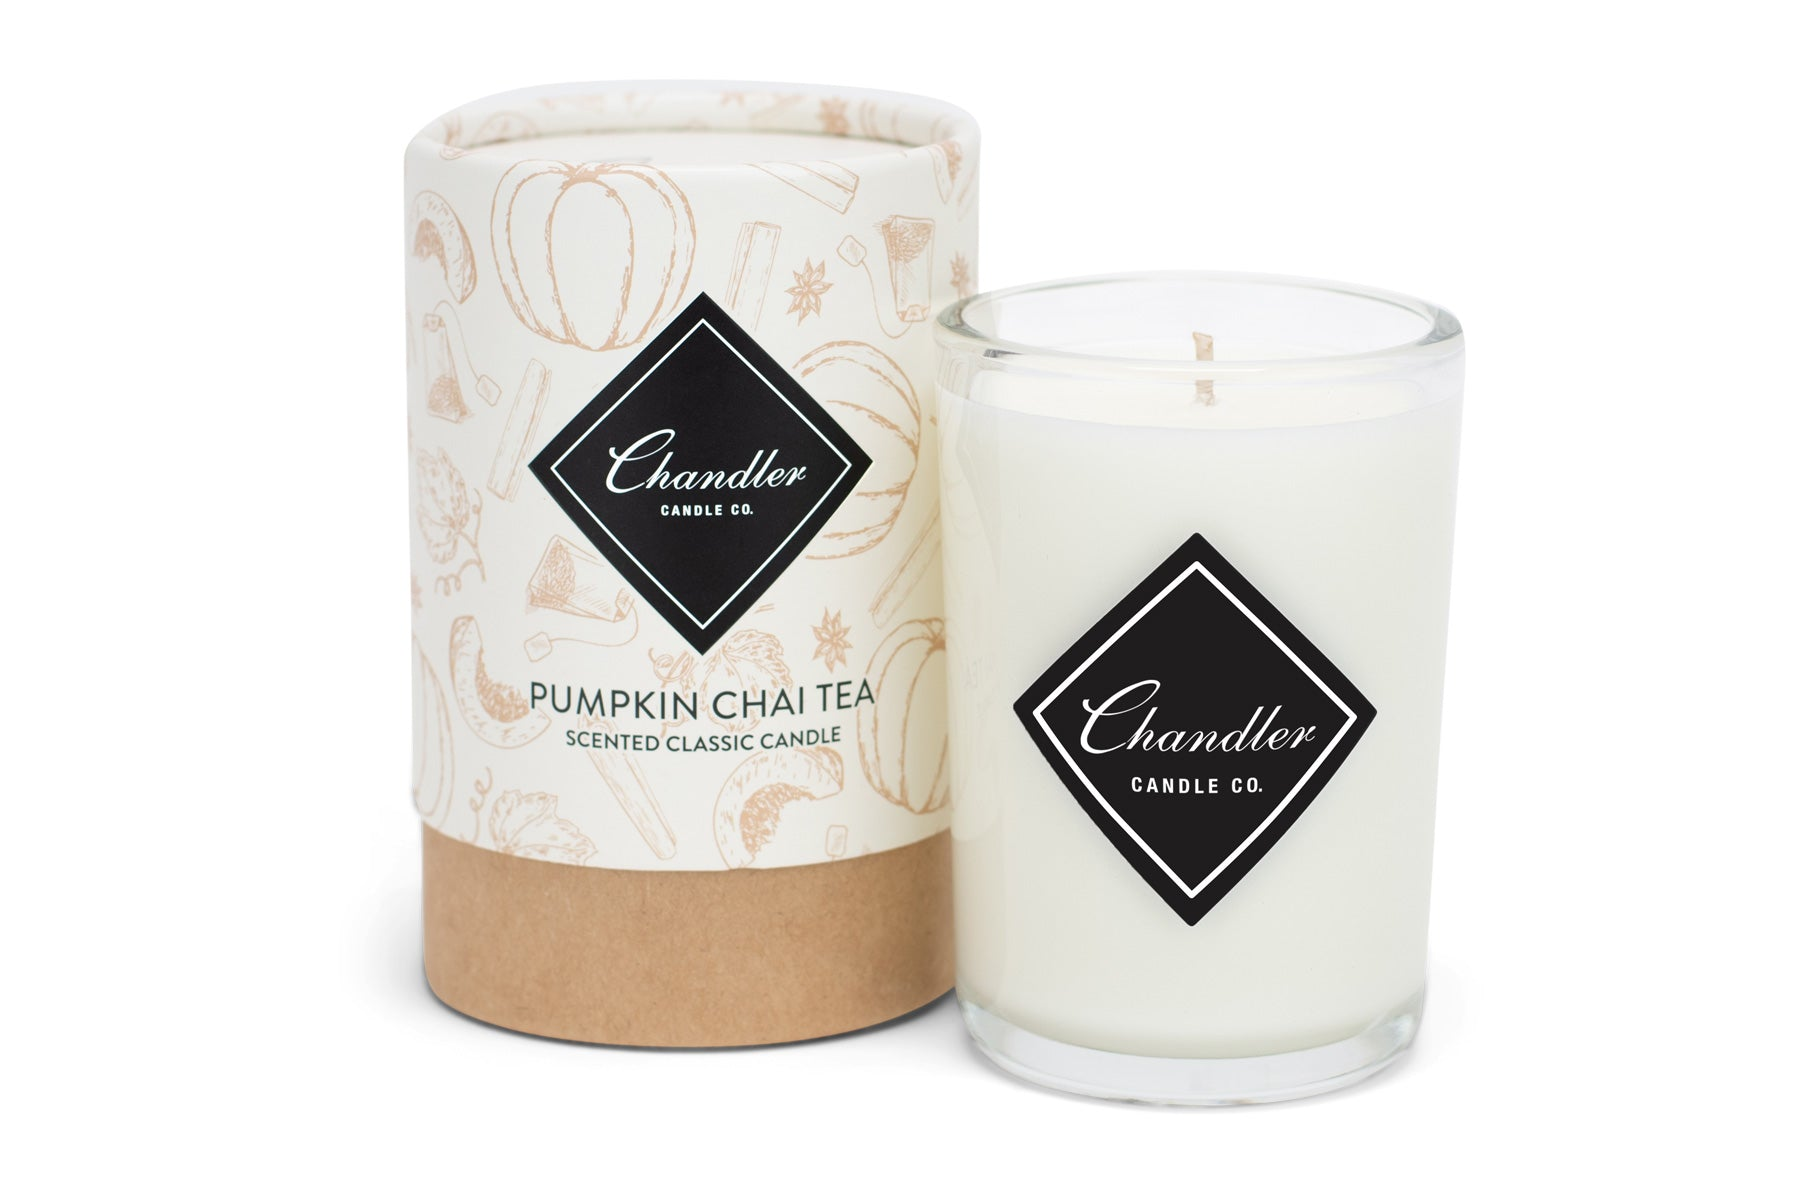 Pumpkin Spiced Chai Tea Candle